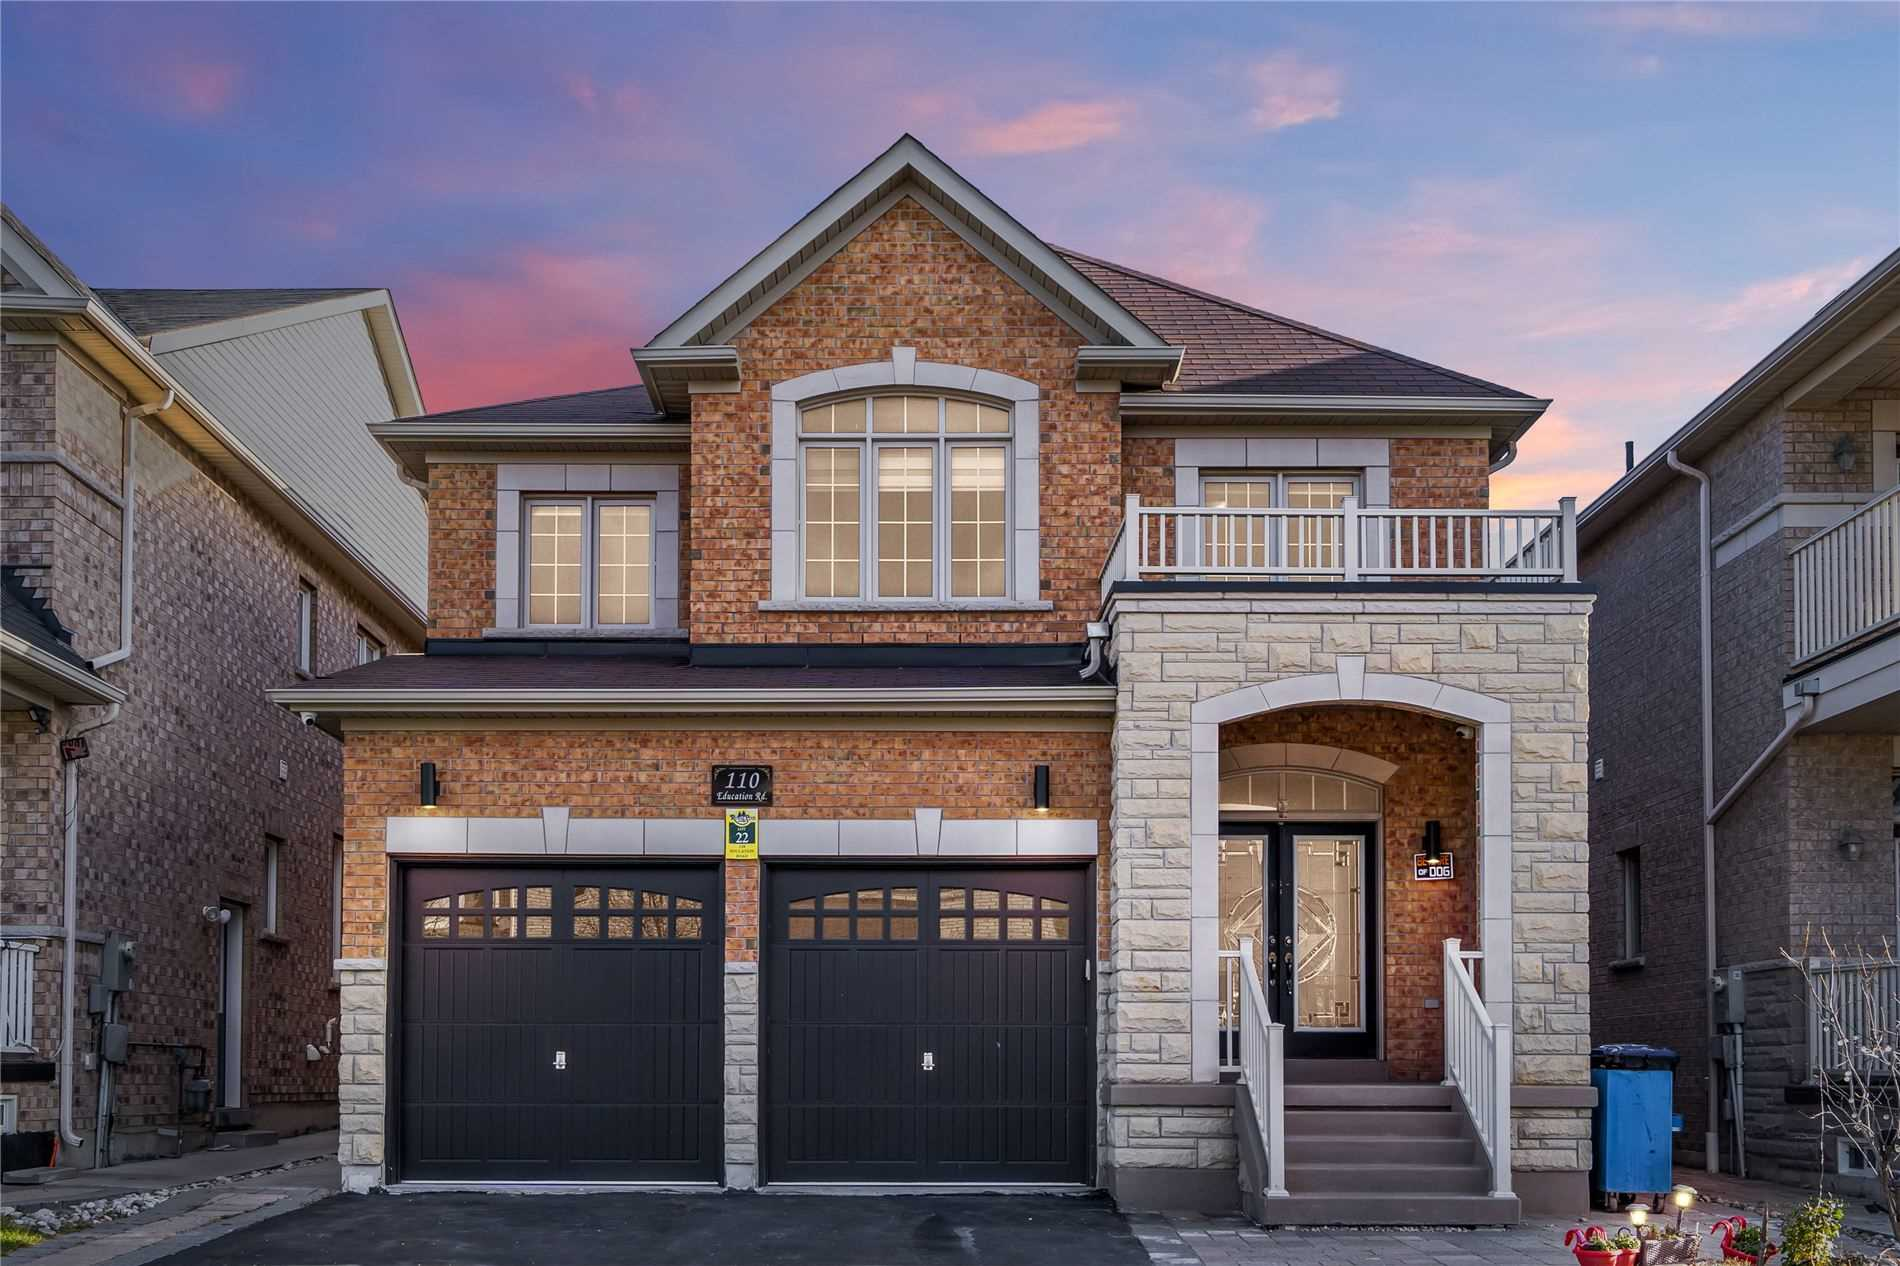 For Sale: 110 Education Road, Brampton, ON | 4 Bed, 5 Bath House for $1075000.00. See 39 photos!